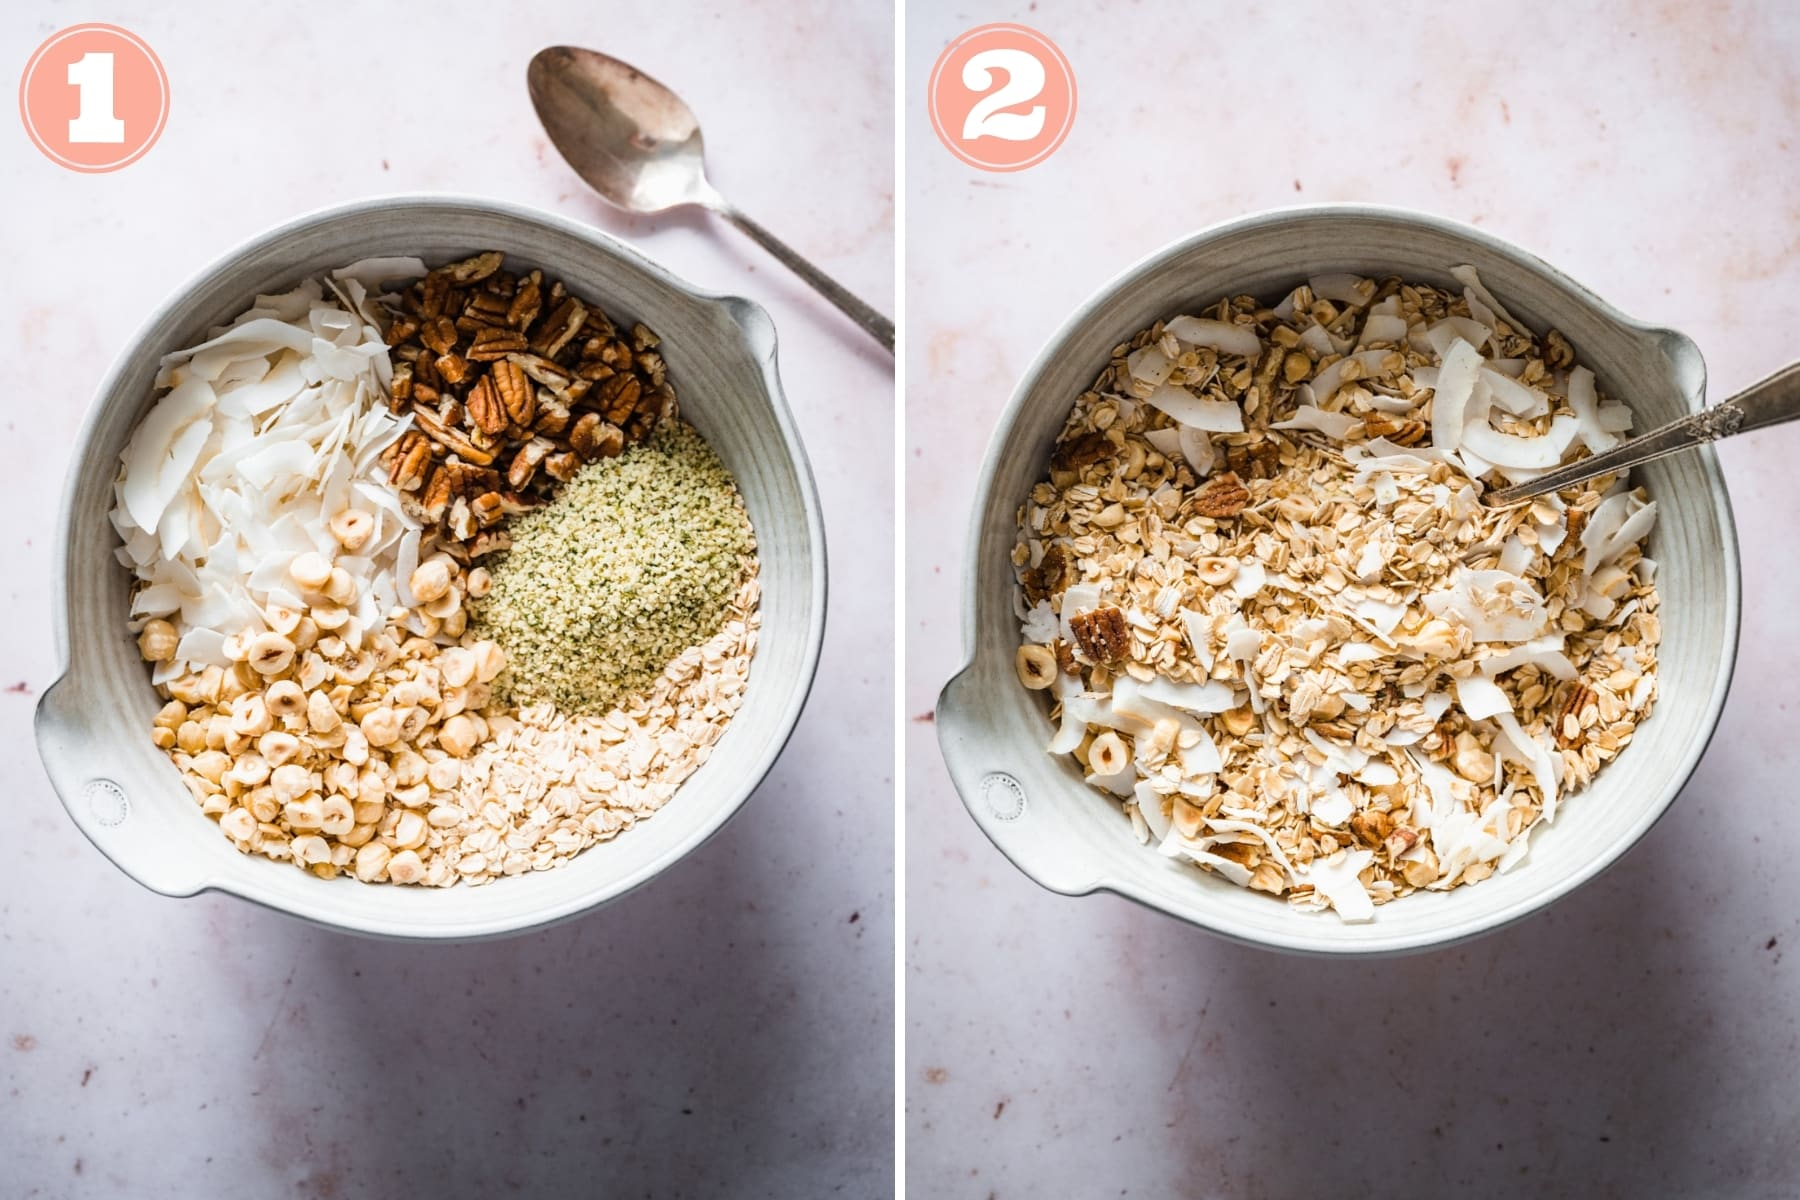 before and after stirring together dry ingredients for chocolate hazelnut granola.